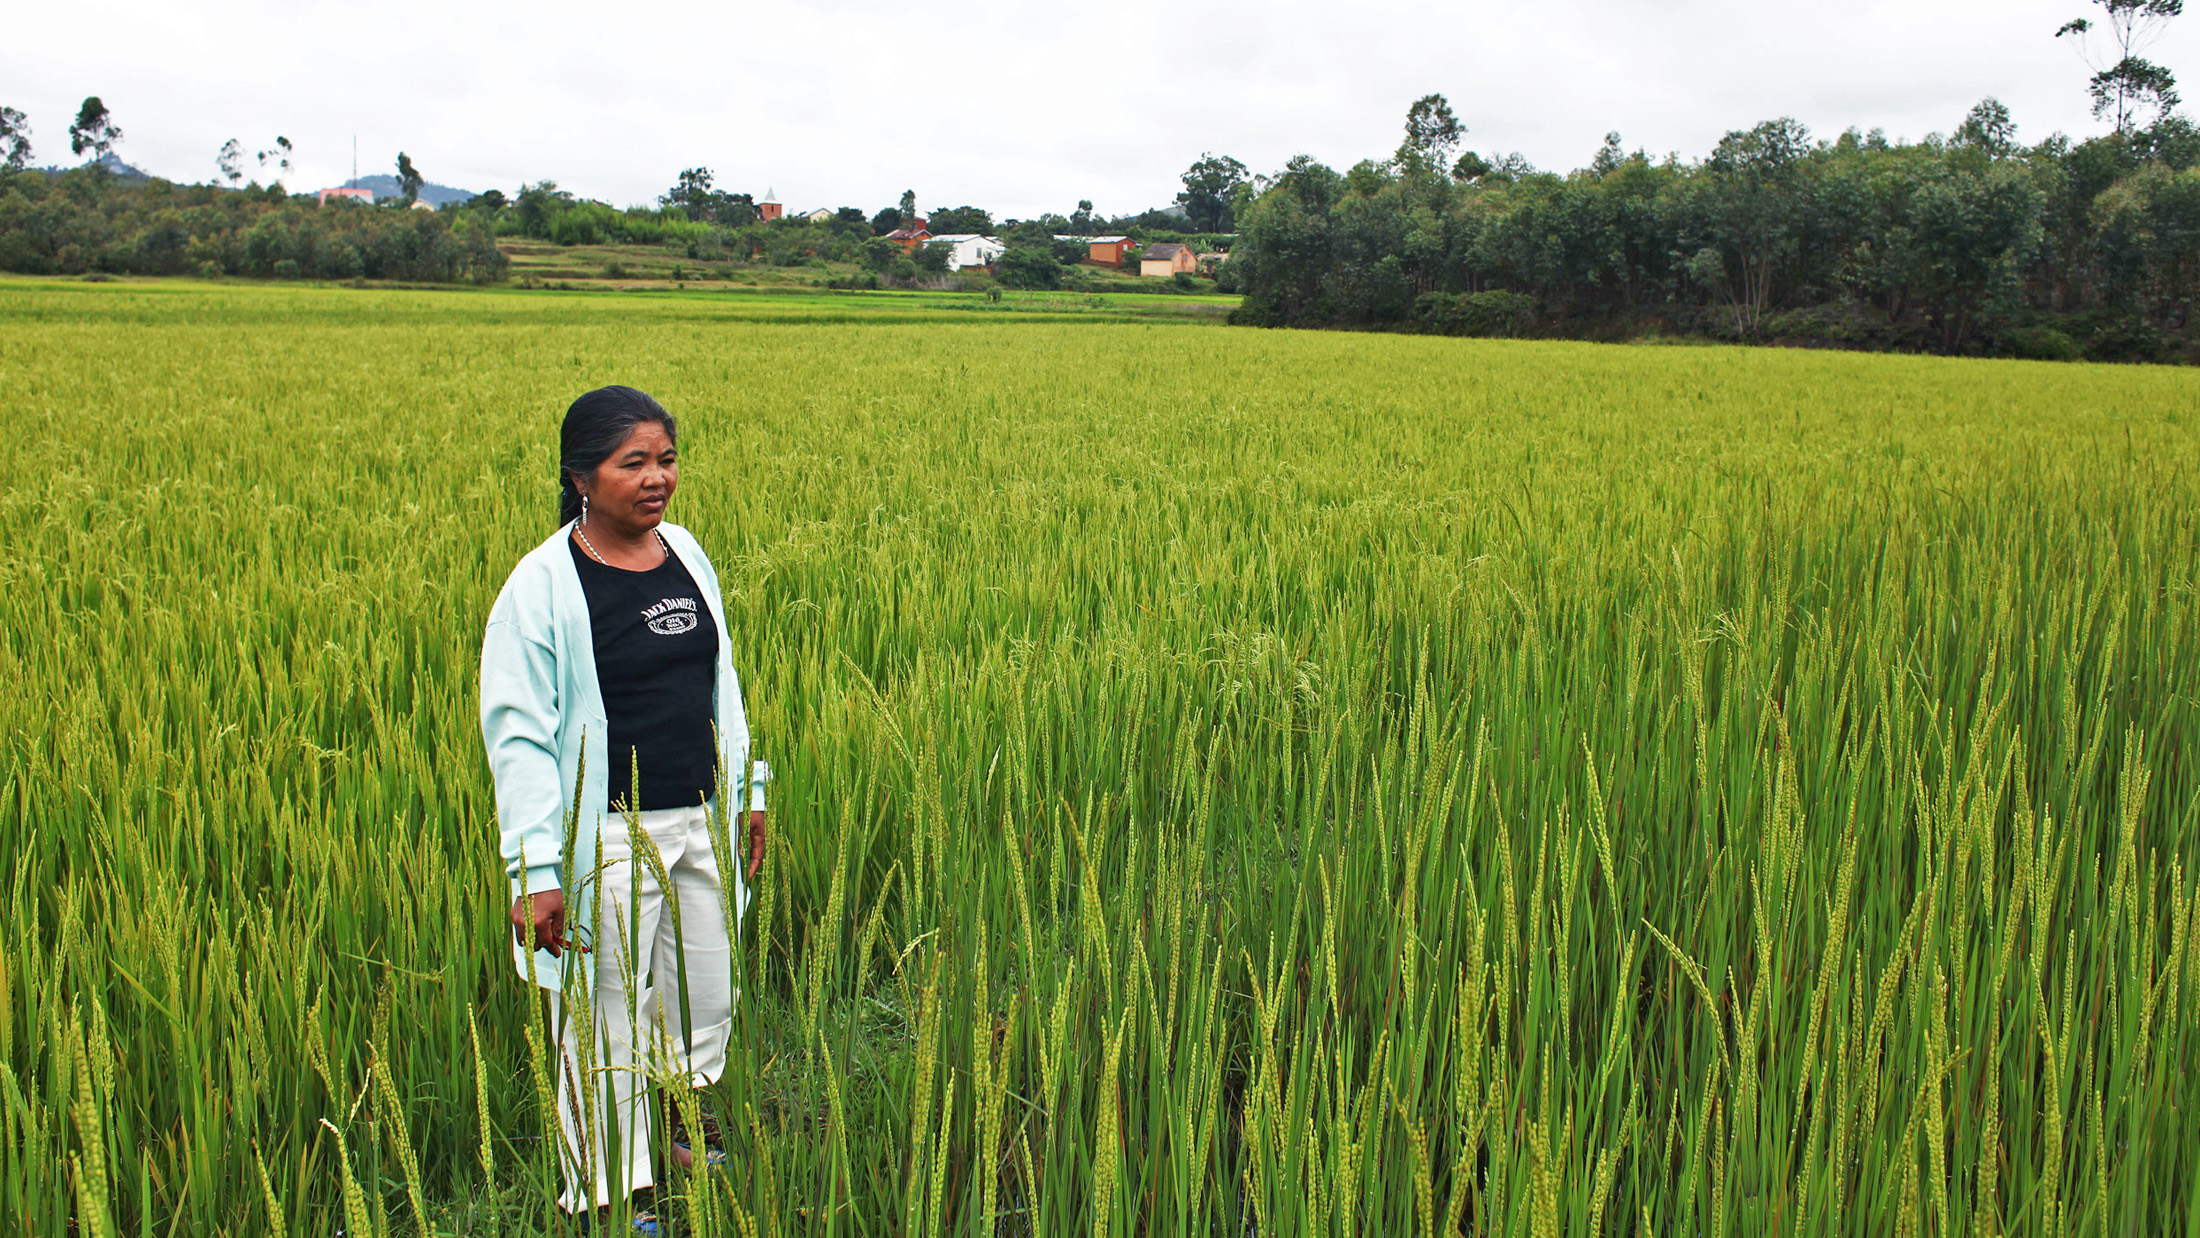 Rosalie Rabodozafy stands in her family's rice field in Sambaina Commune, west of Madagascar's capital, Antananarivo. Through the Millennium Villages Project, Rabodozafy's family has learned to plant rice according to the System of Rice Intensificat